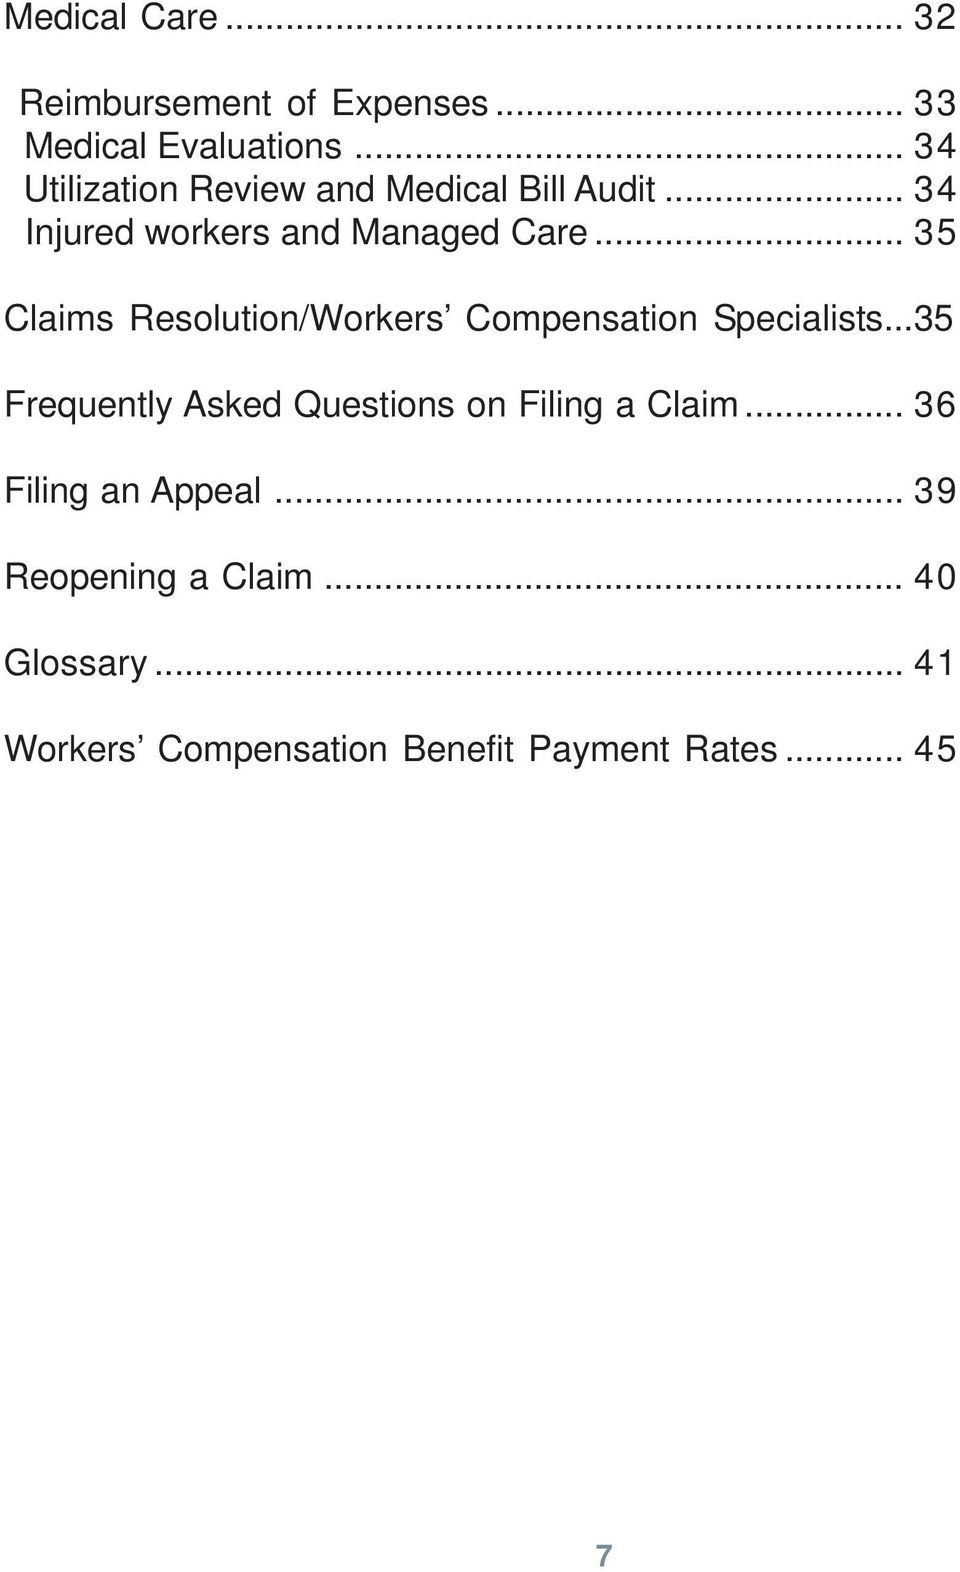 .. 35 Claims Resolution/Workers Compensation Specialists.